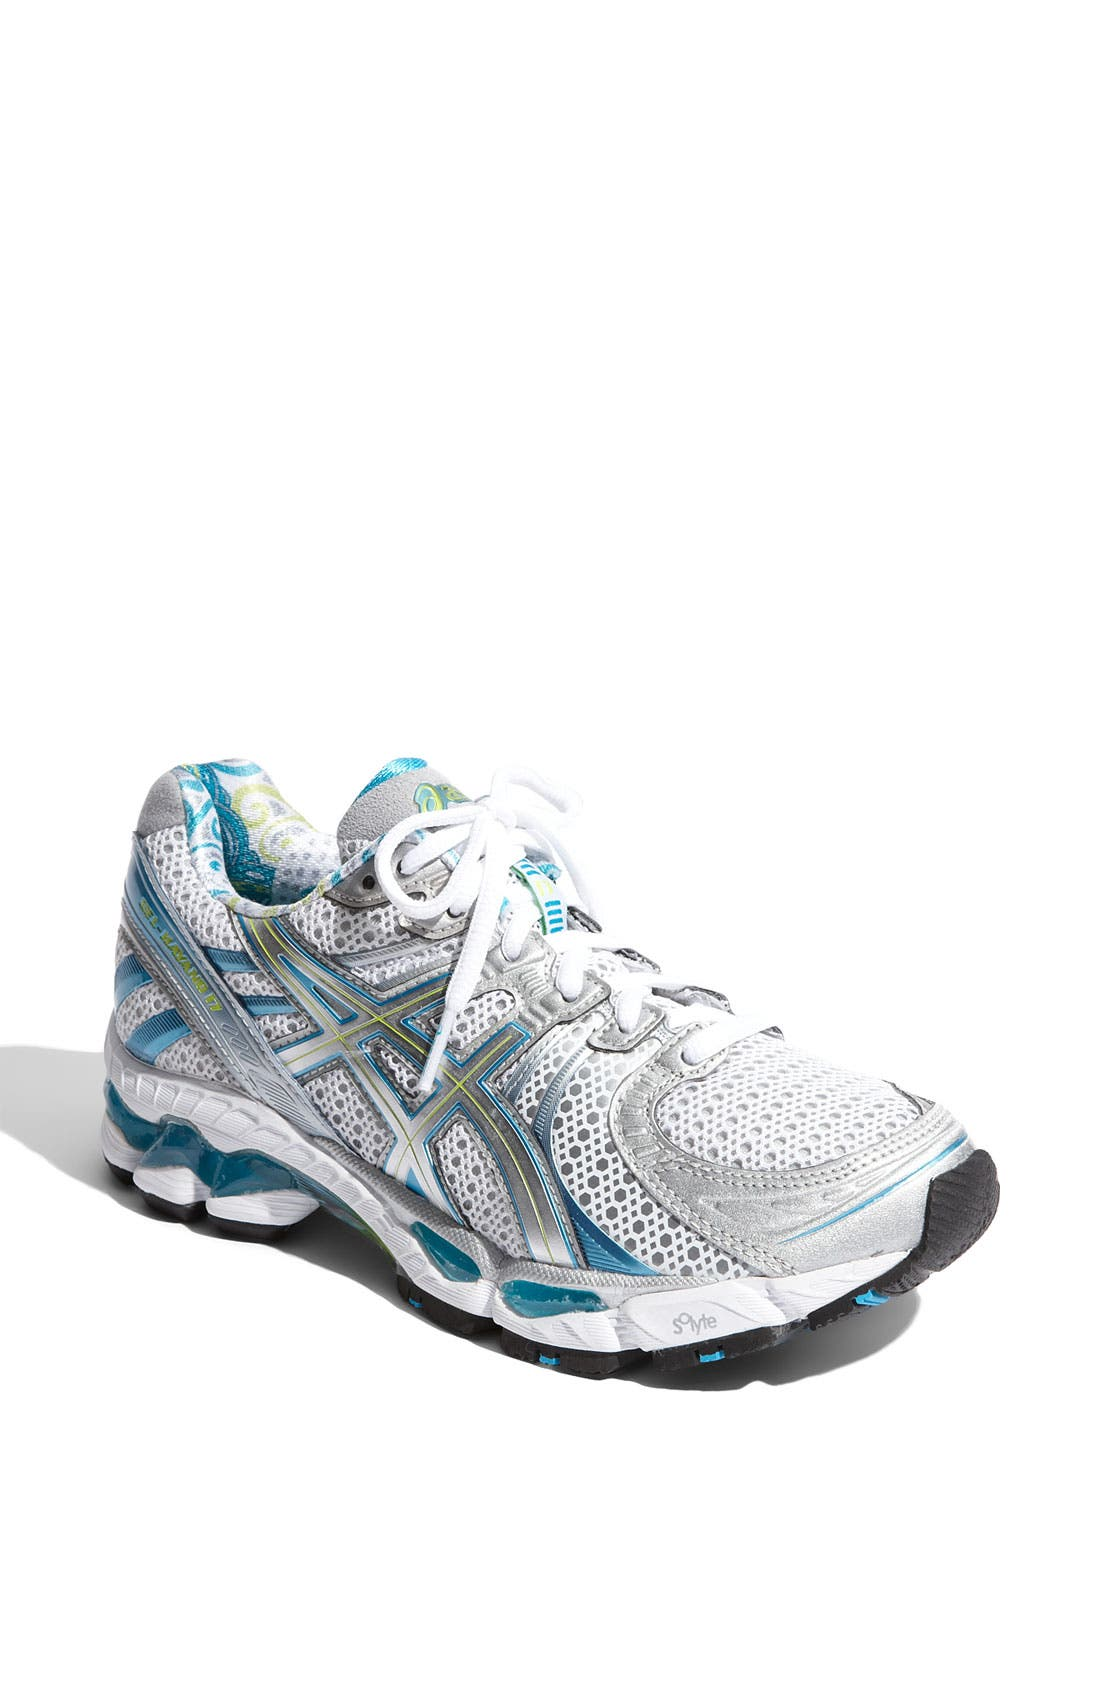 Main Image - ASICS® 'GEL Kayano® 17' Running Shoe (Women)